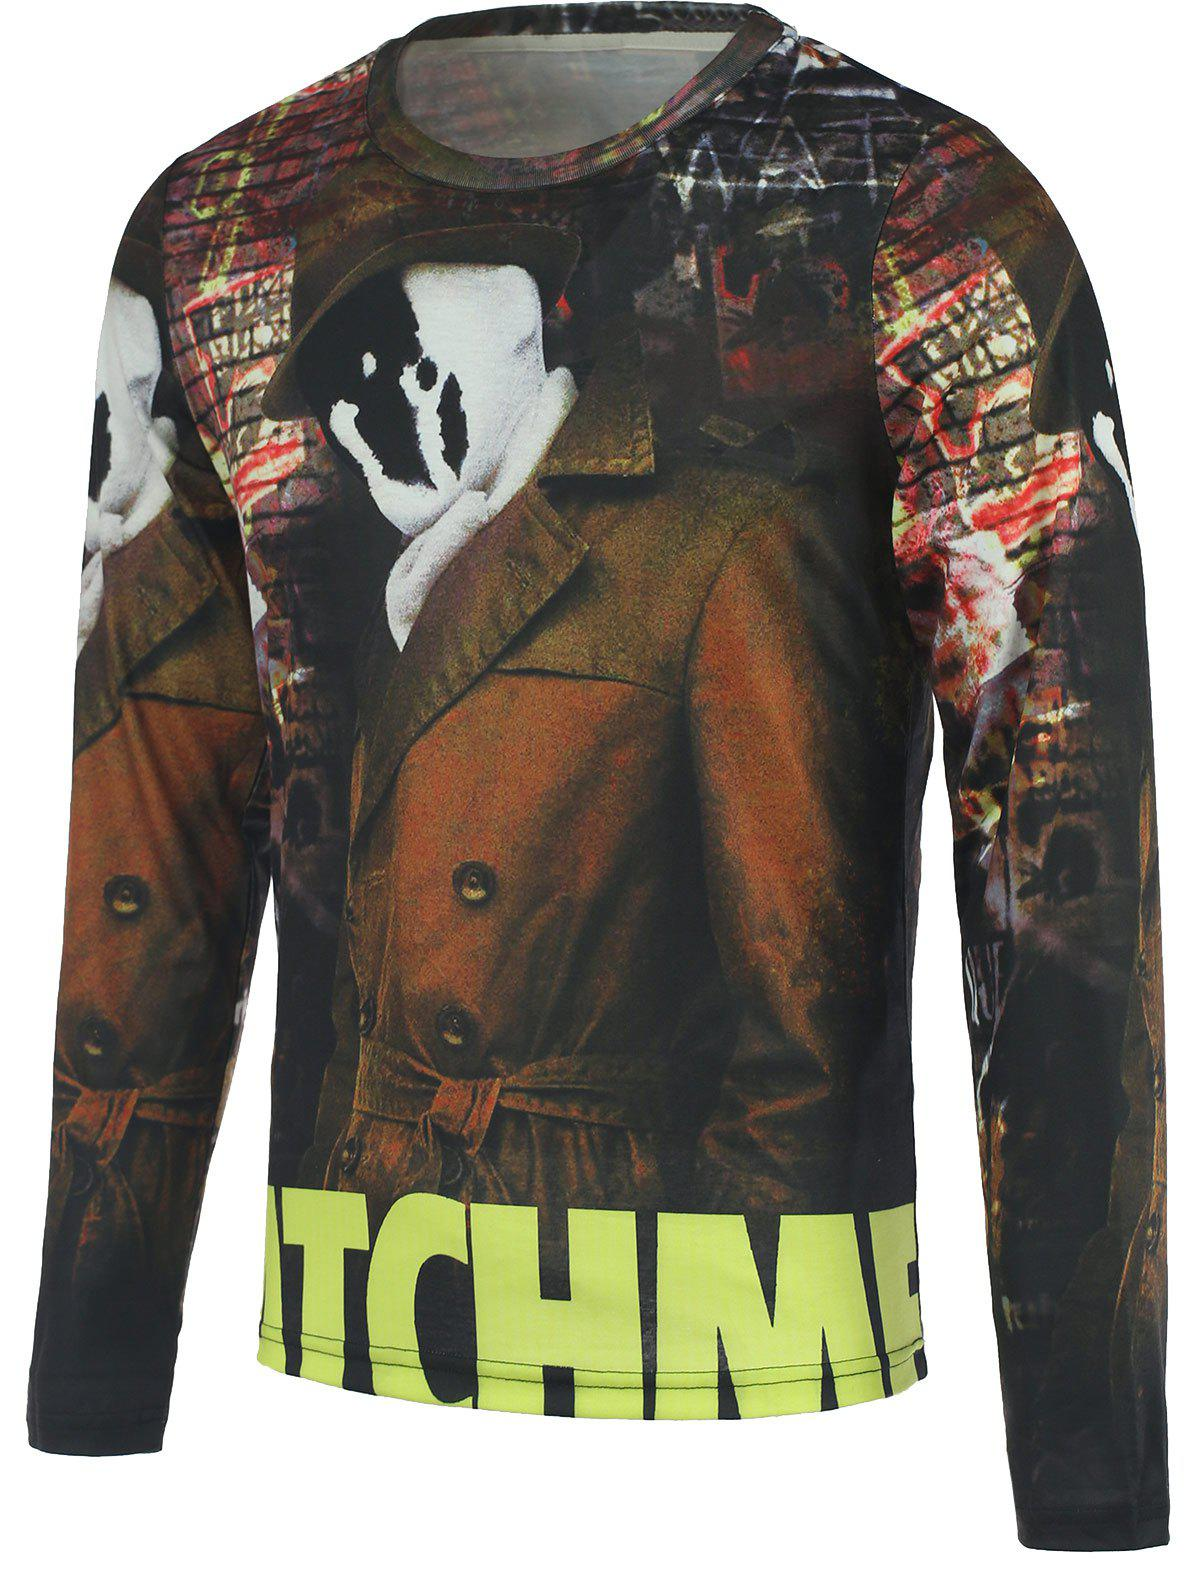 3D Ghost Printed Round Neck Men's Long Sleeve T-Shirt - COLORMIX 2XL